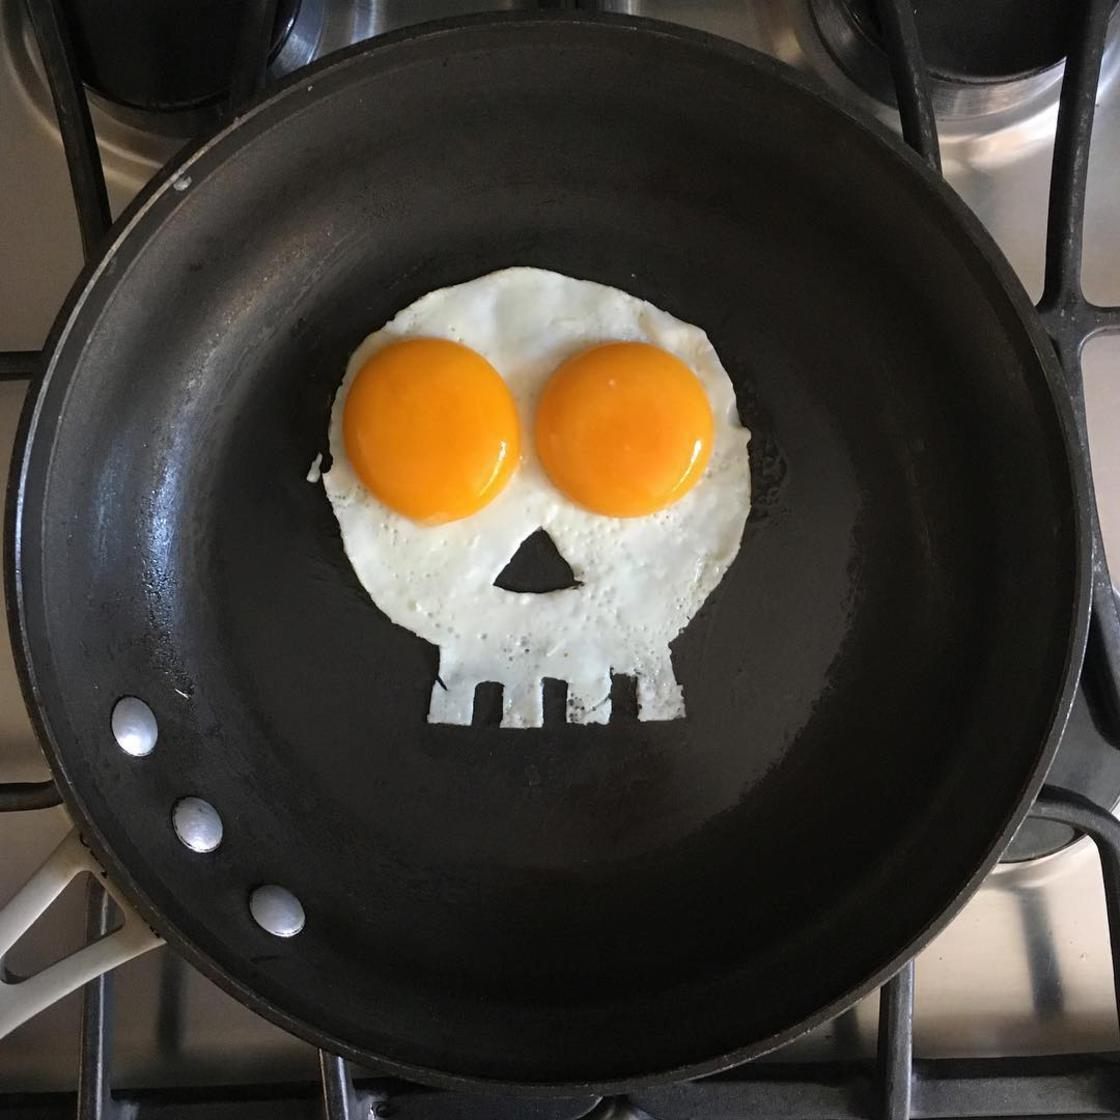 Art of Breakfast – This guy turns his fried eggs into works of art